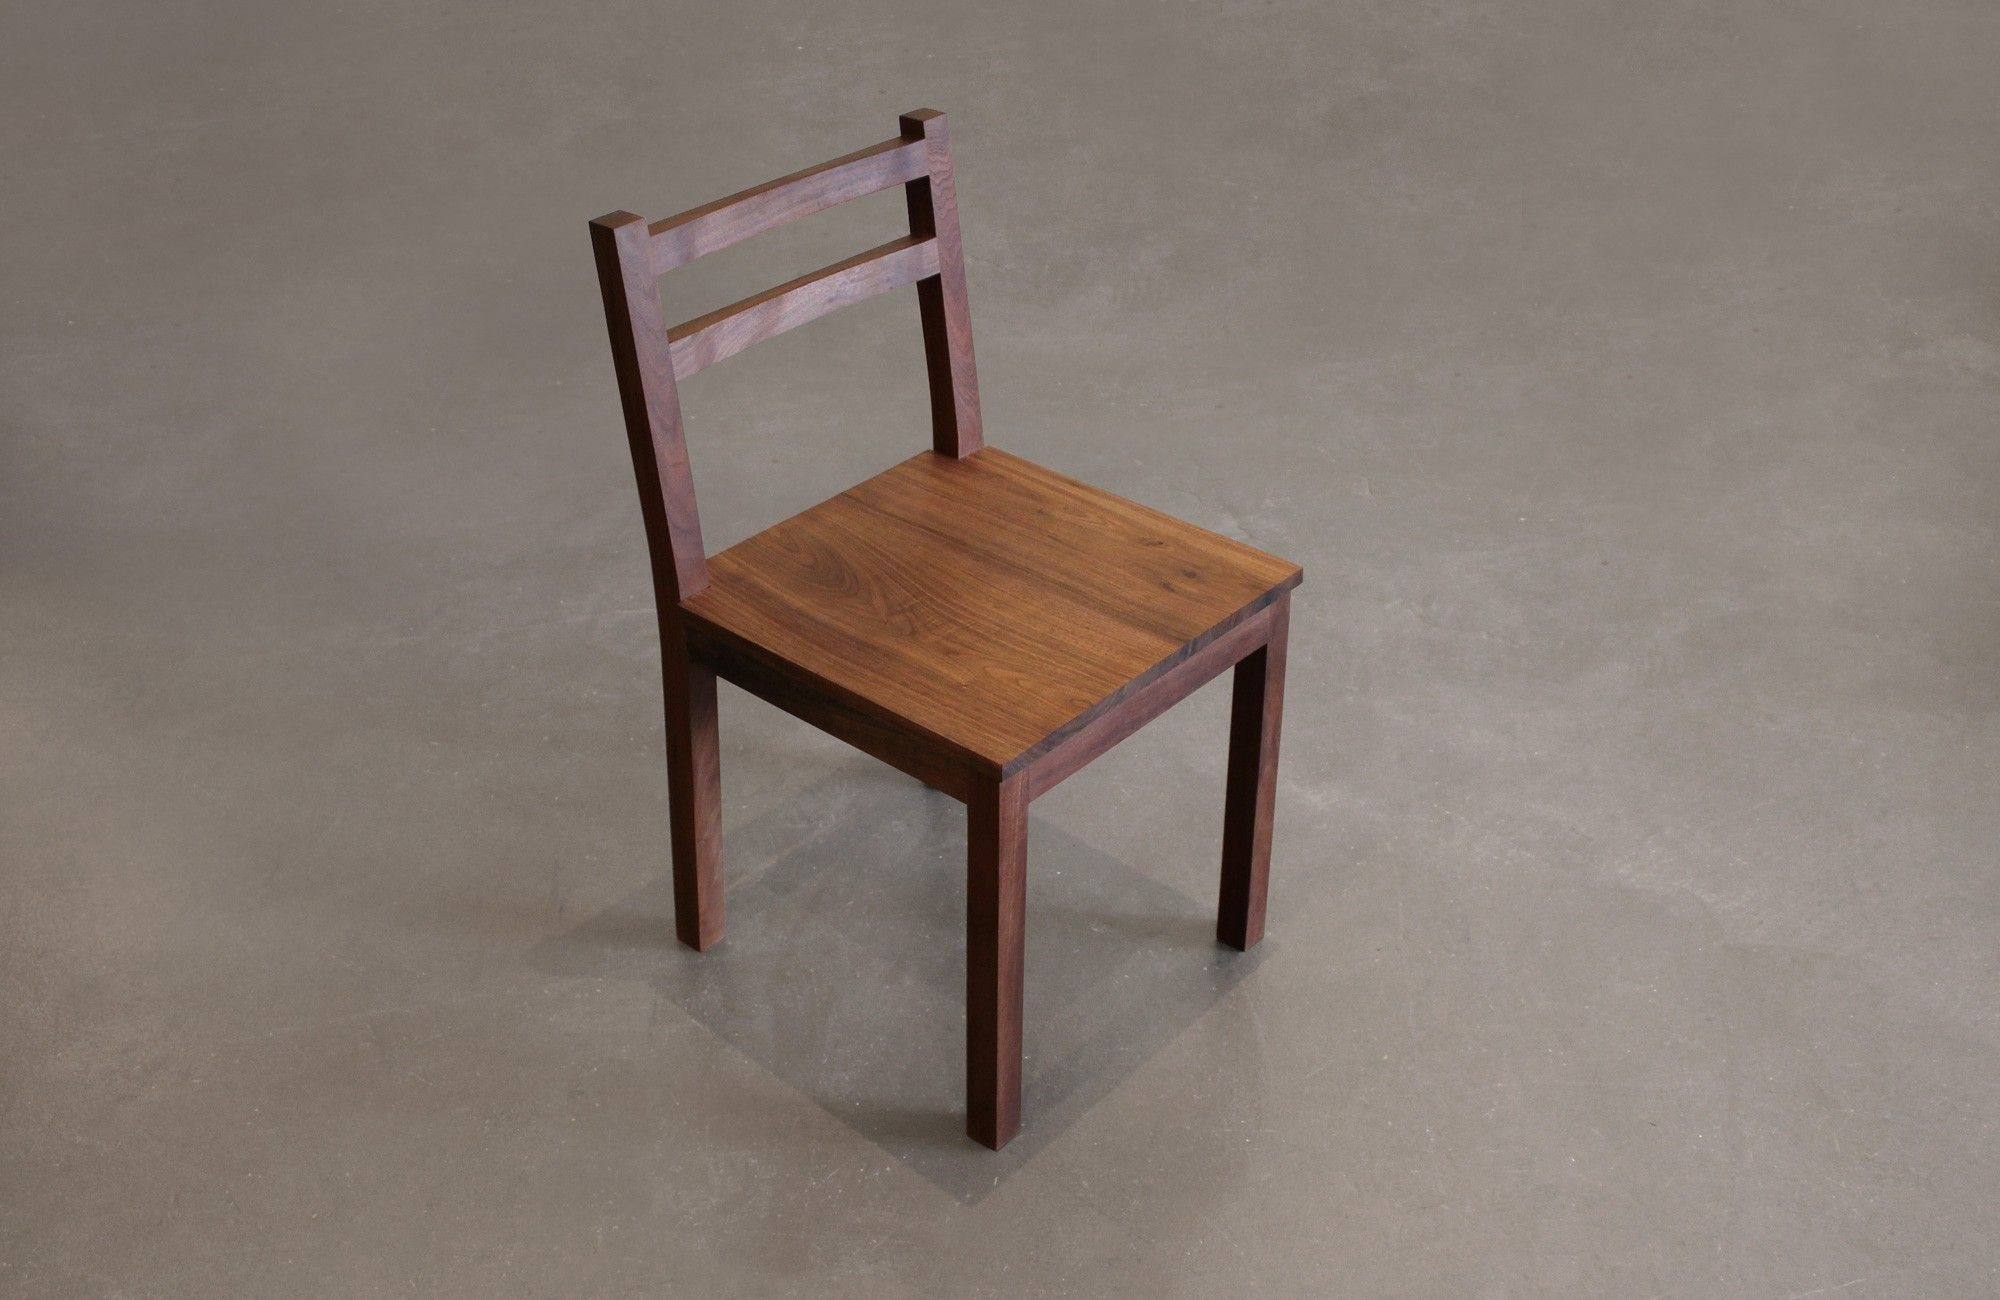 Beran Table U0026 Index Chair U2014 Shigouri U2014 Woodworking U0026 Custom Furniture U2014  Denver, Colorado